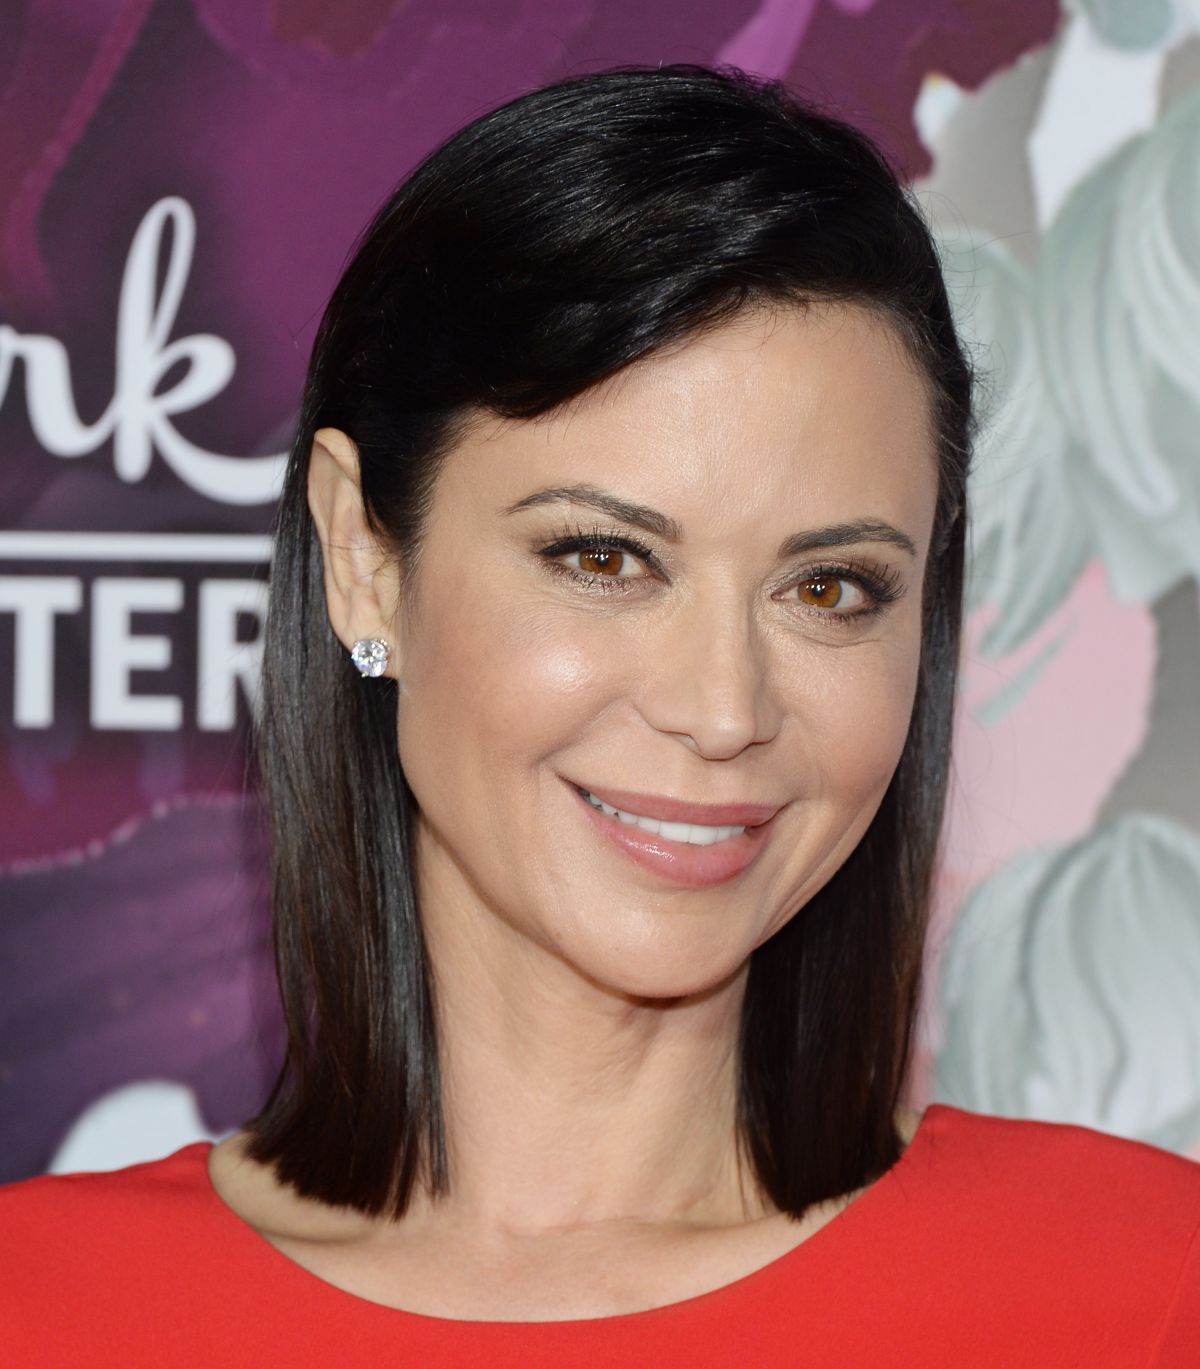 CATHERINE BELL at Hallmark Channel All-star Party in Los